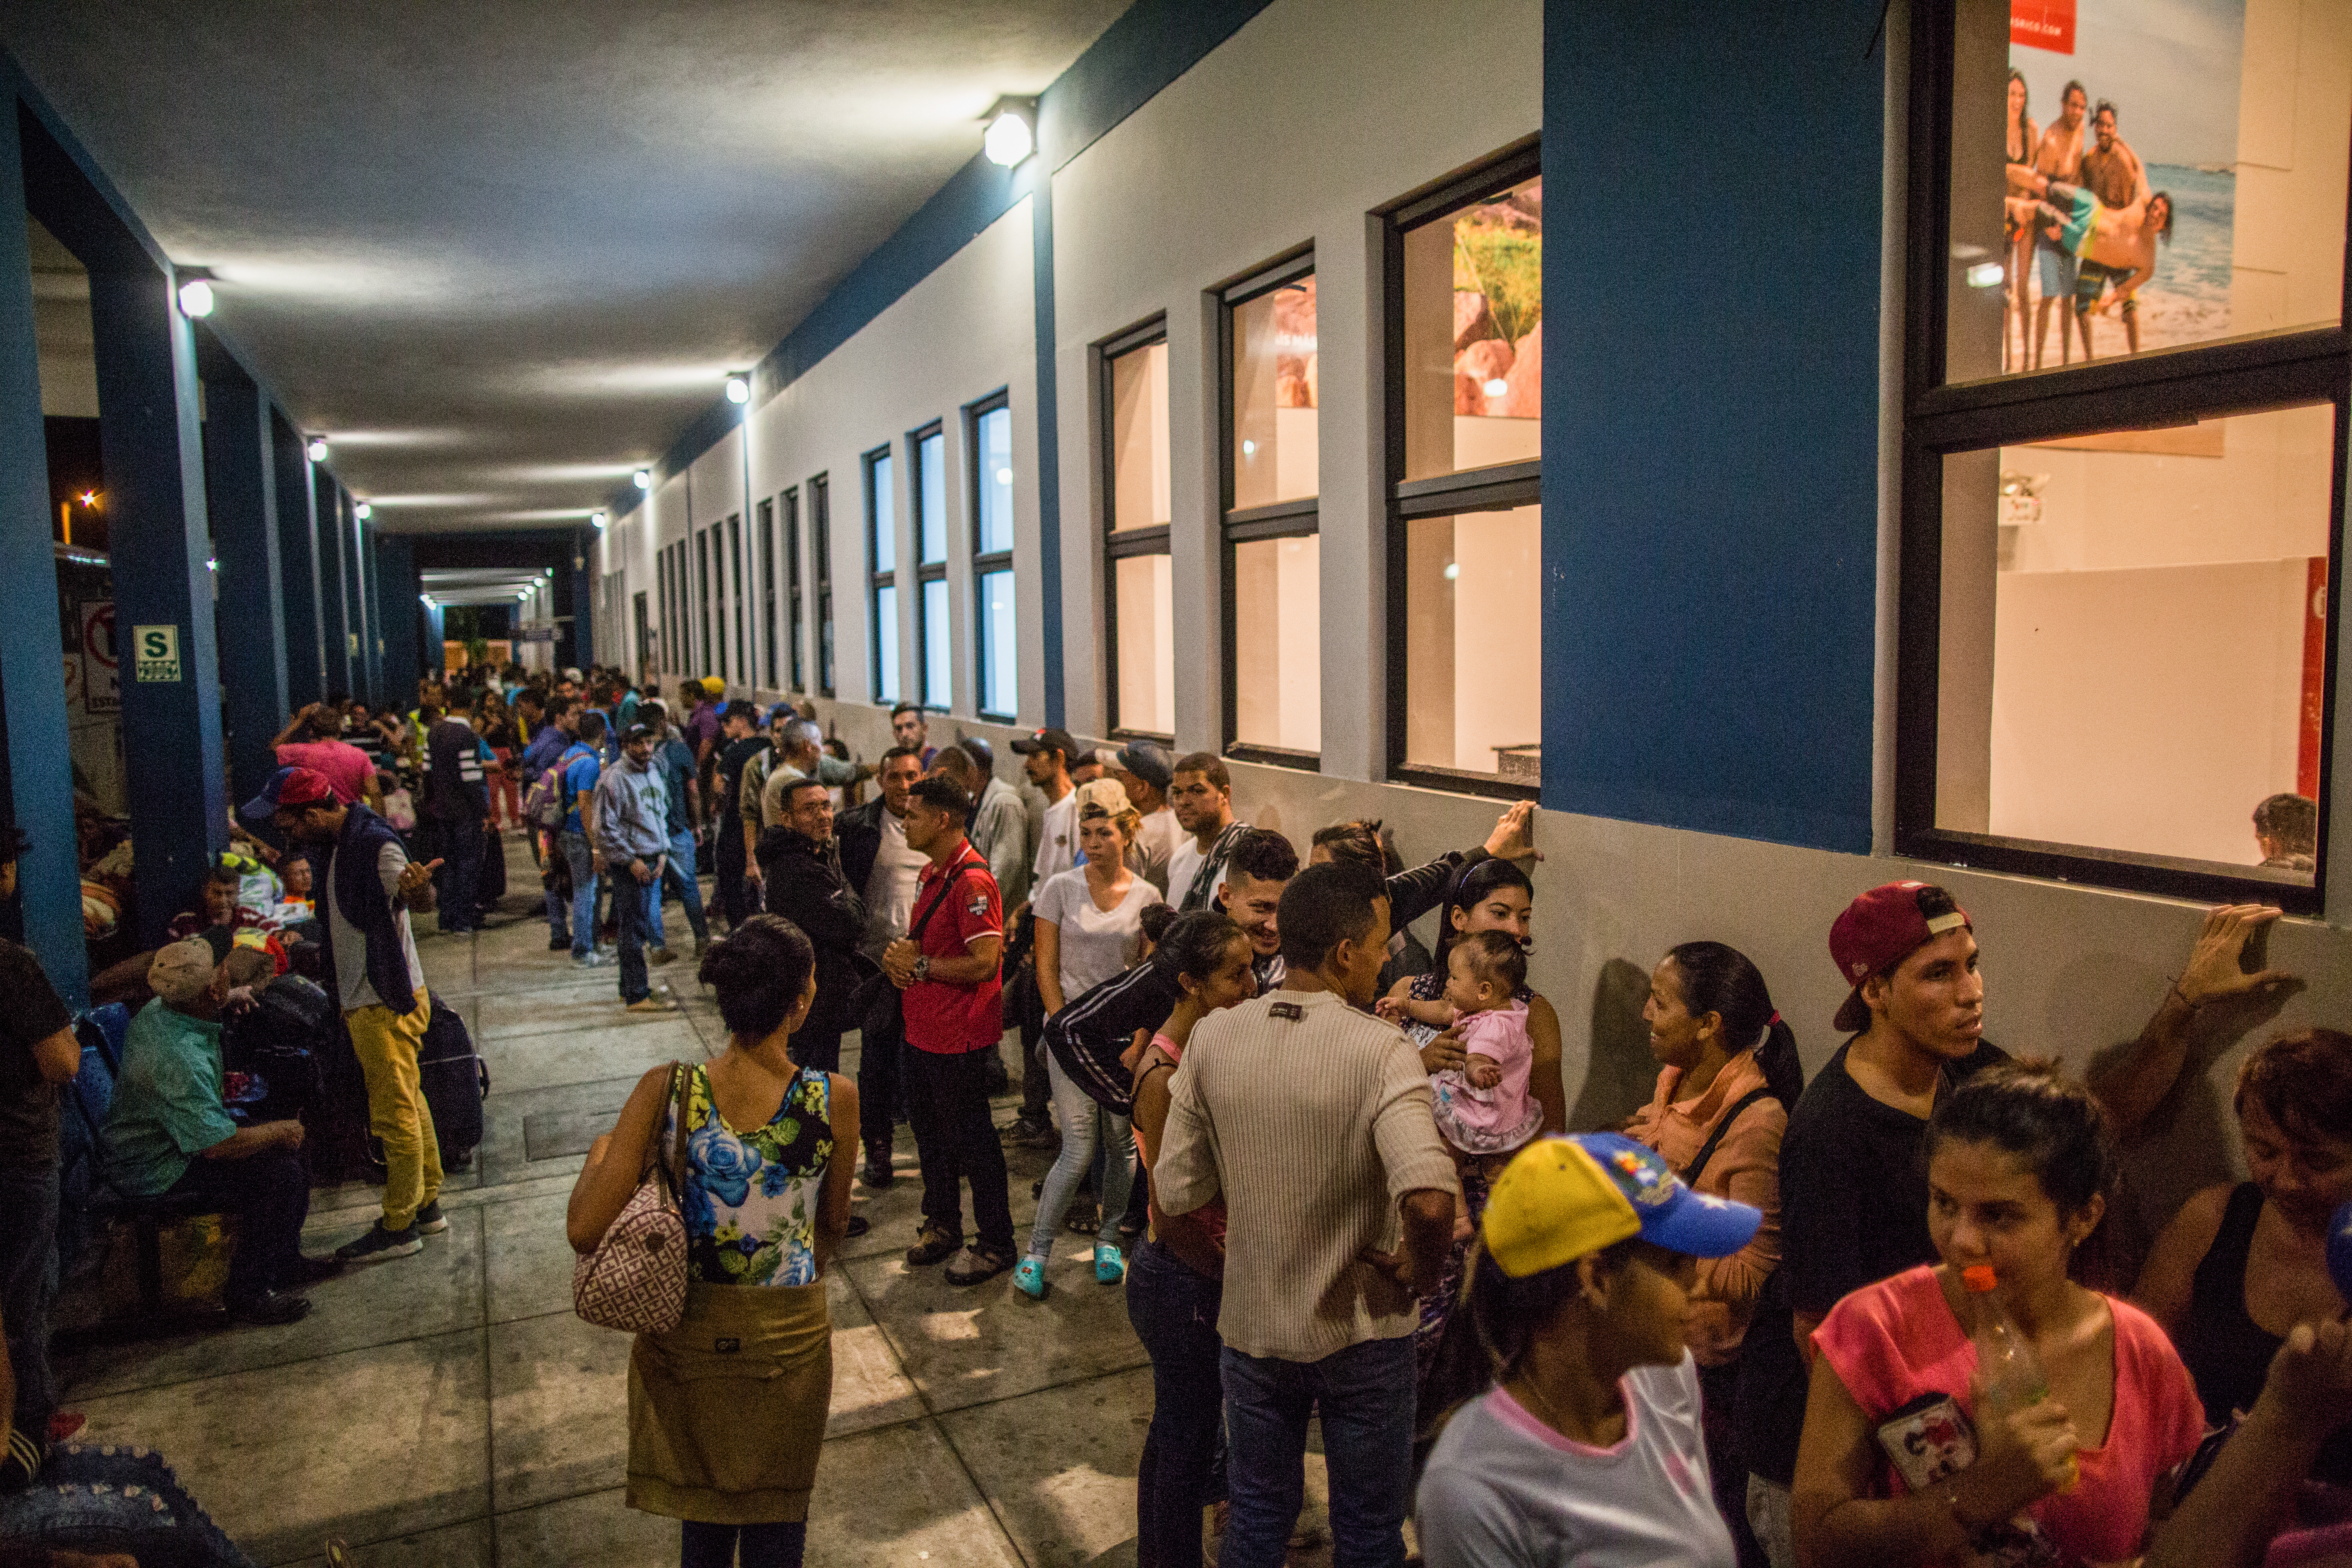 Venezuelans waiting and queuing inside a building.